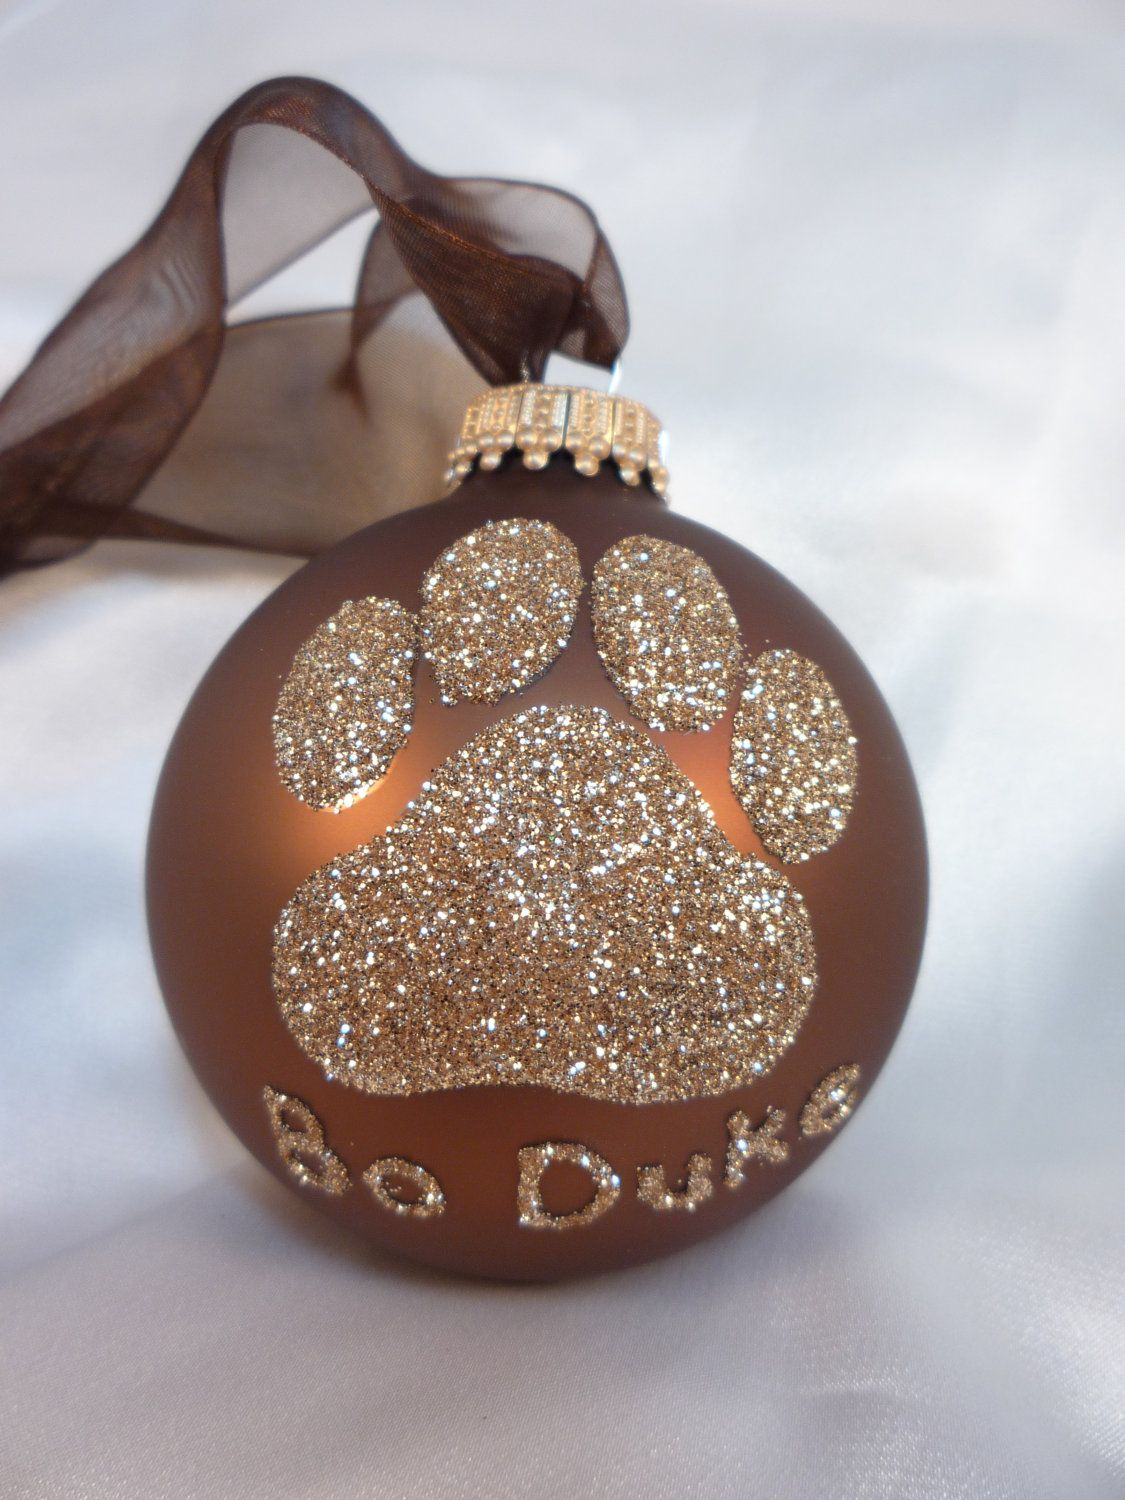 Personalized cat christmas ornaments - Dog Paw Print Glitter Christmas Ornament Your Choice Of Color Personalized Pet Doggie Glass Ball Chocolate Brown And Gold K9 Dog Lover